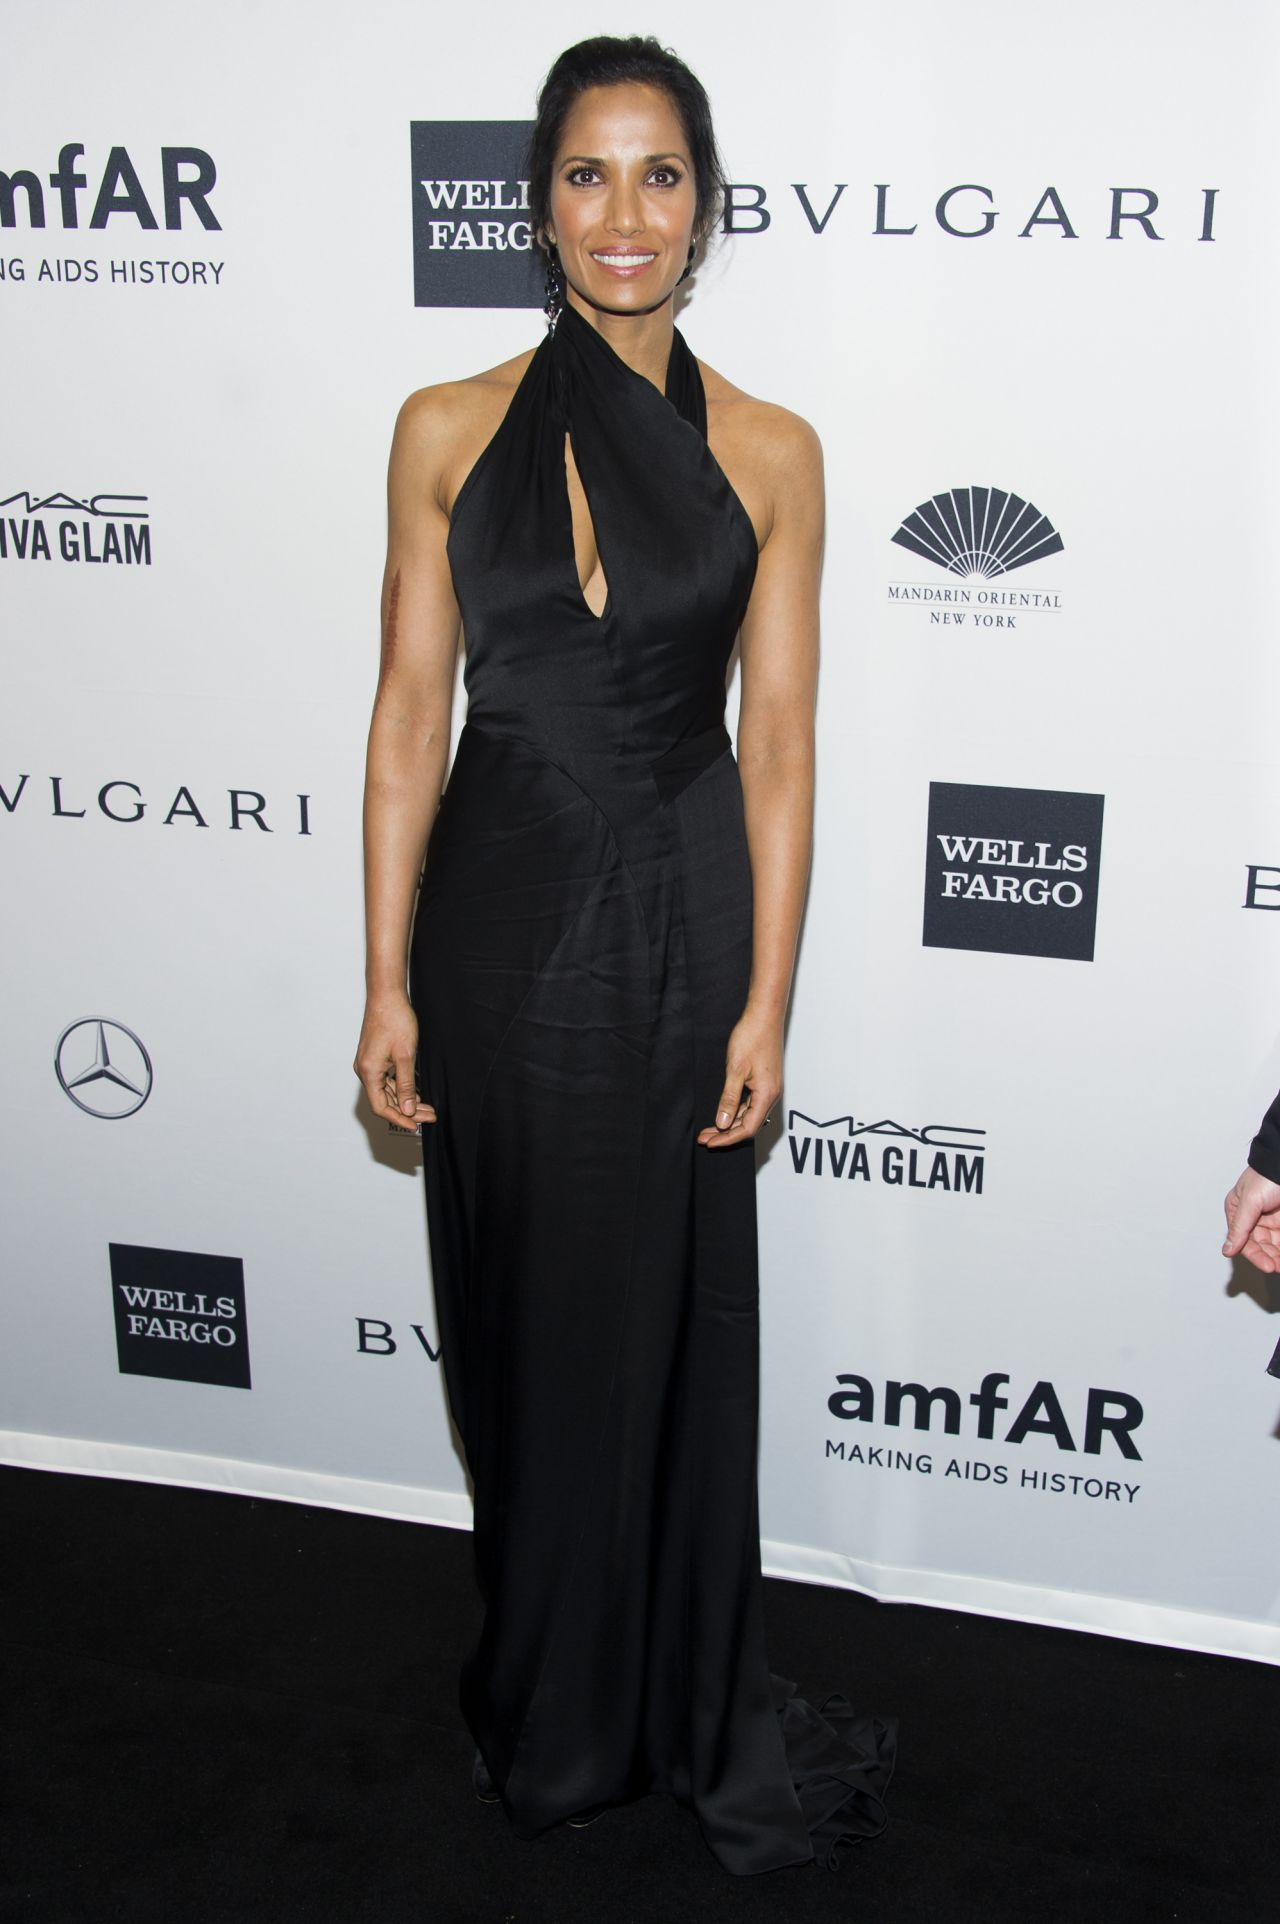 Padma Lakshmi Attends amfAR New York Gala - February 2014